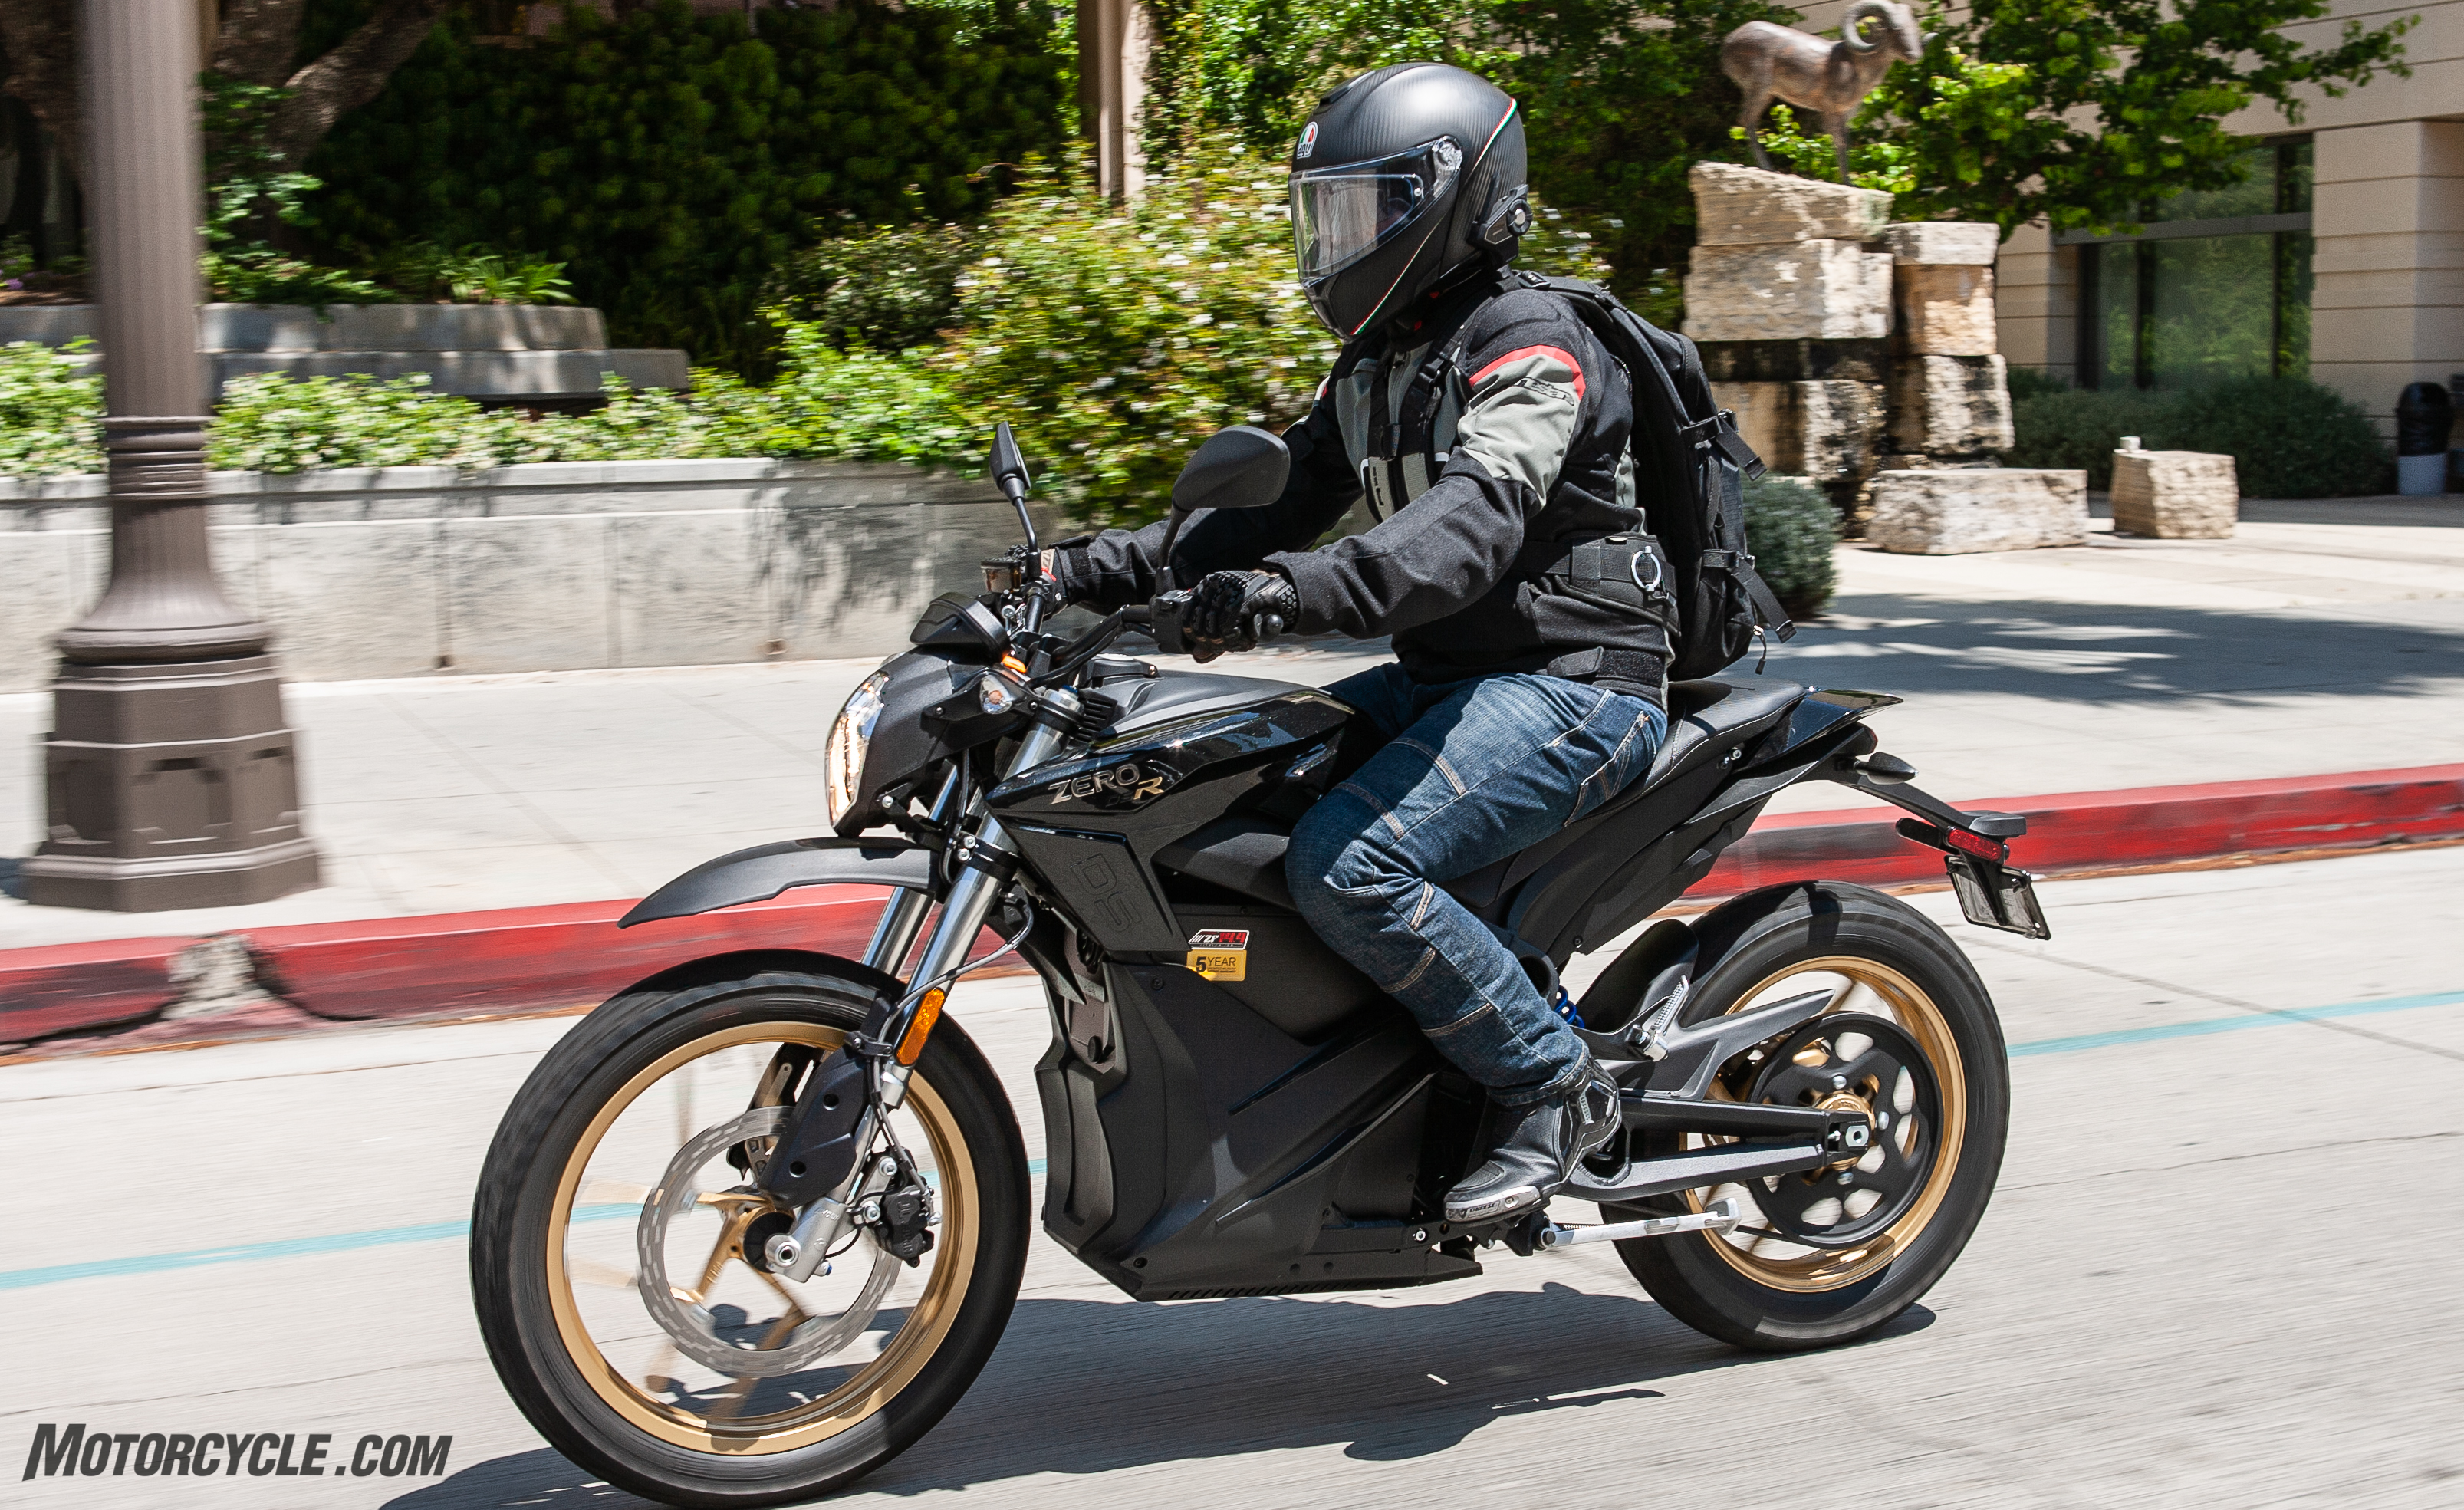 Urban Electric Motorcycles: BMW C Evolution Scooter And Zero DSR